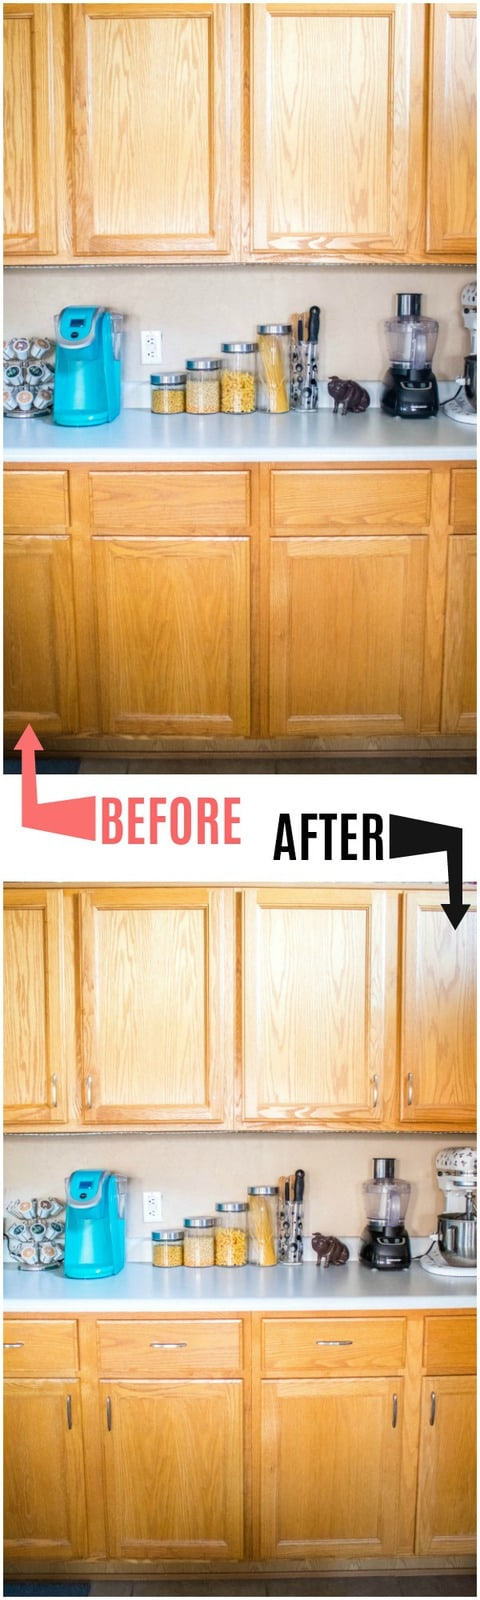 before and after kitchen cabinet improvement